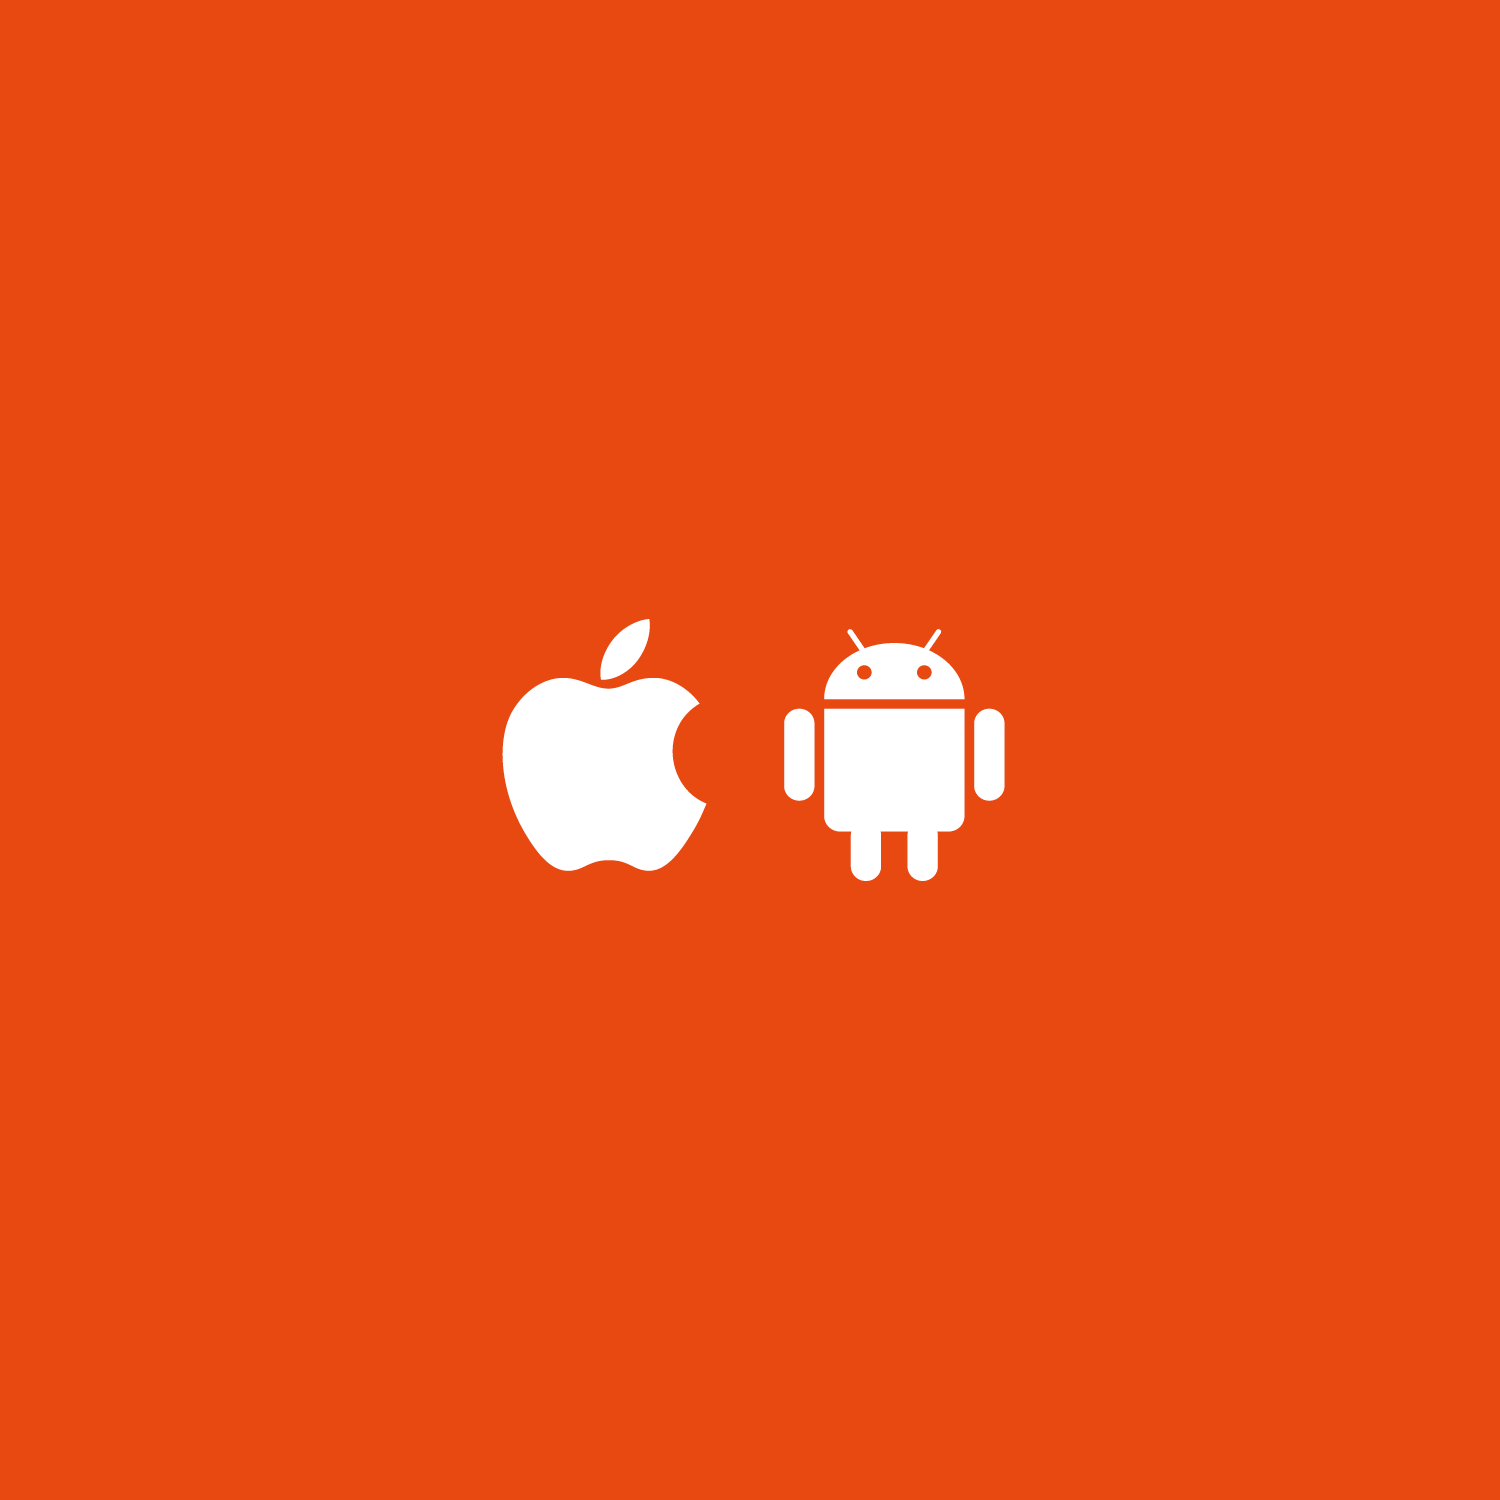 network_apple_android.png